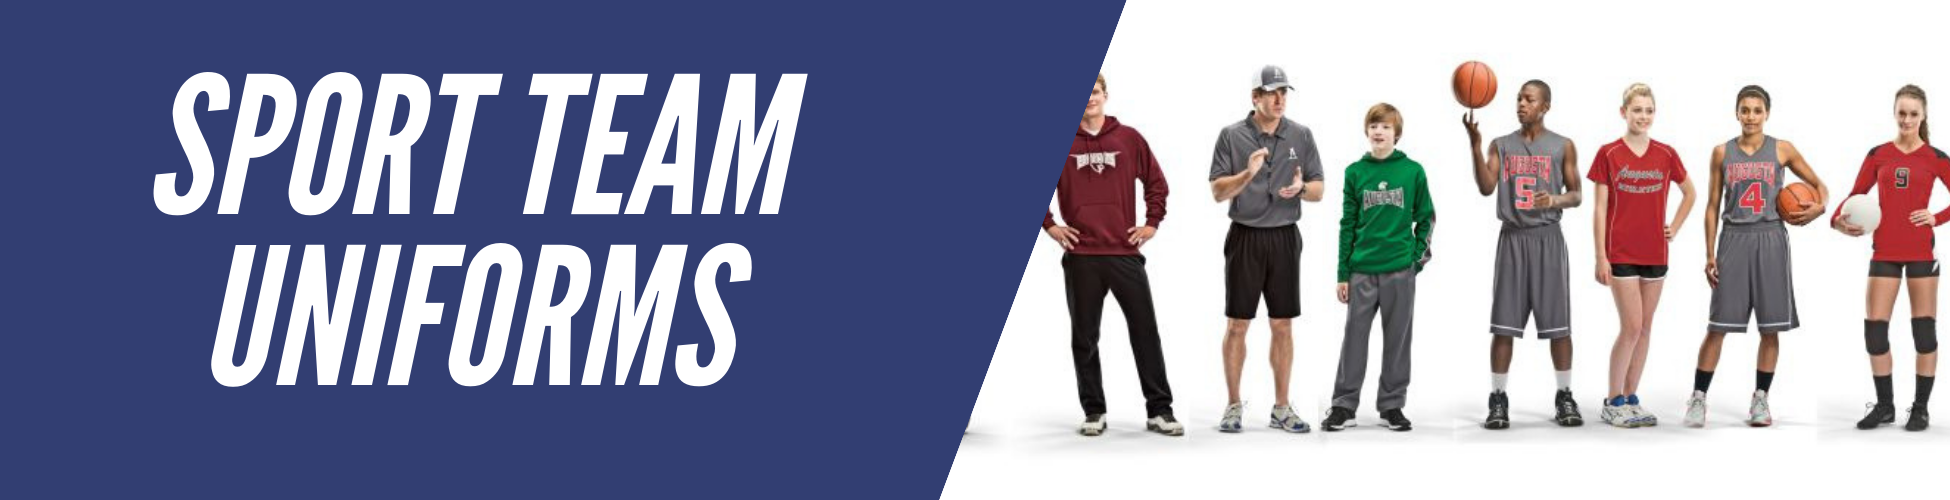 sport-team-uniforms-banner-v3.png